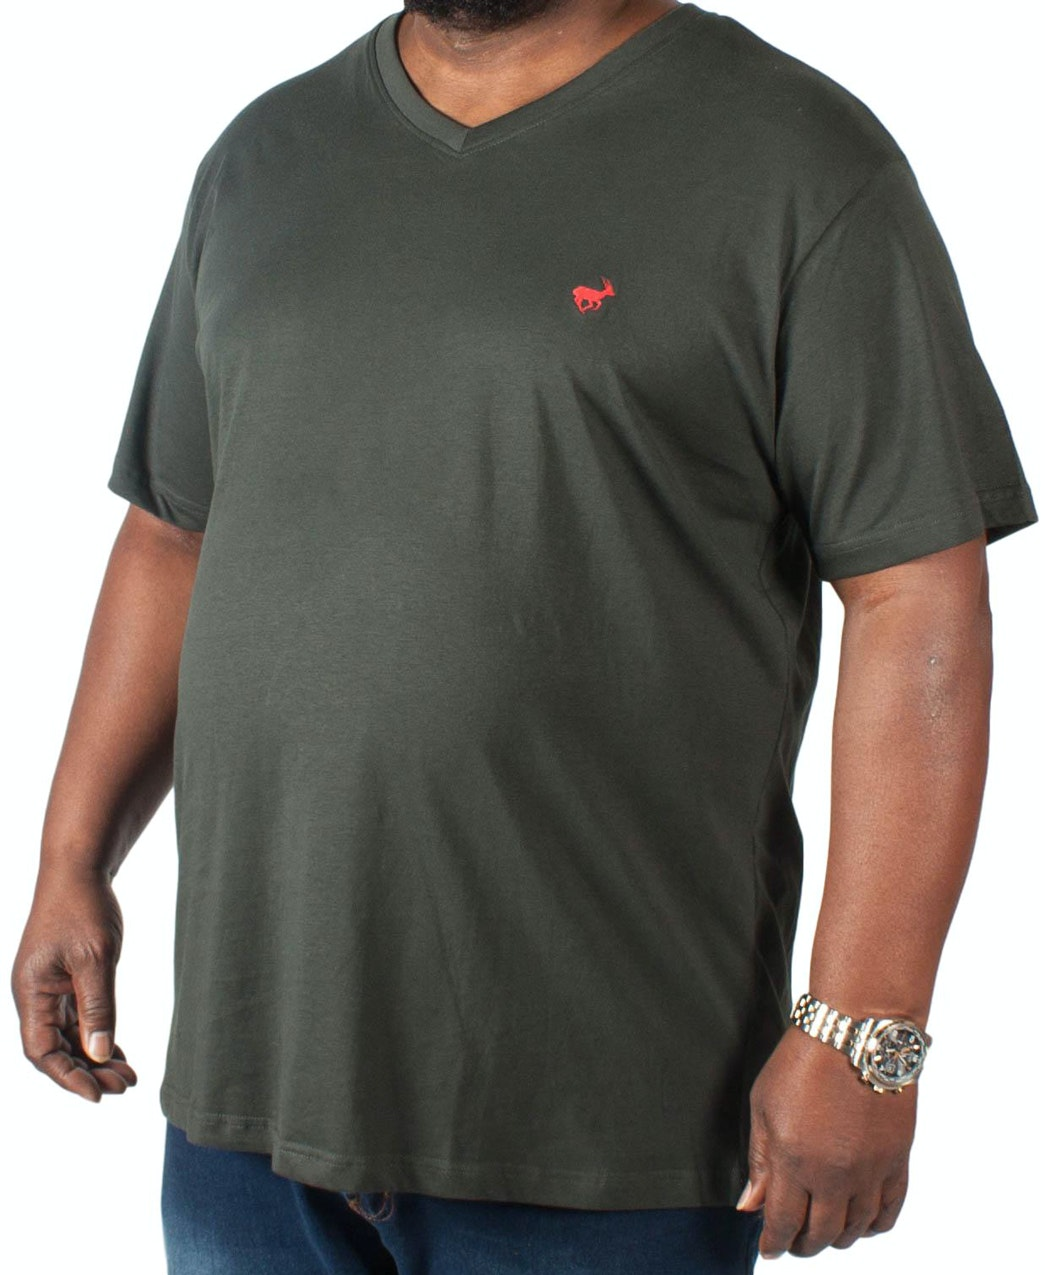 Bigdude Signature V-Neck T-Shirt Black